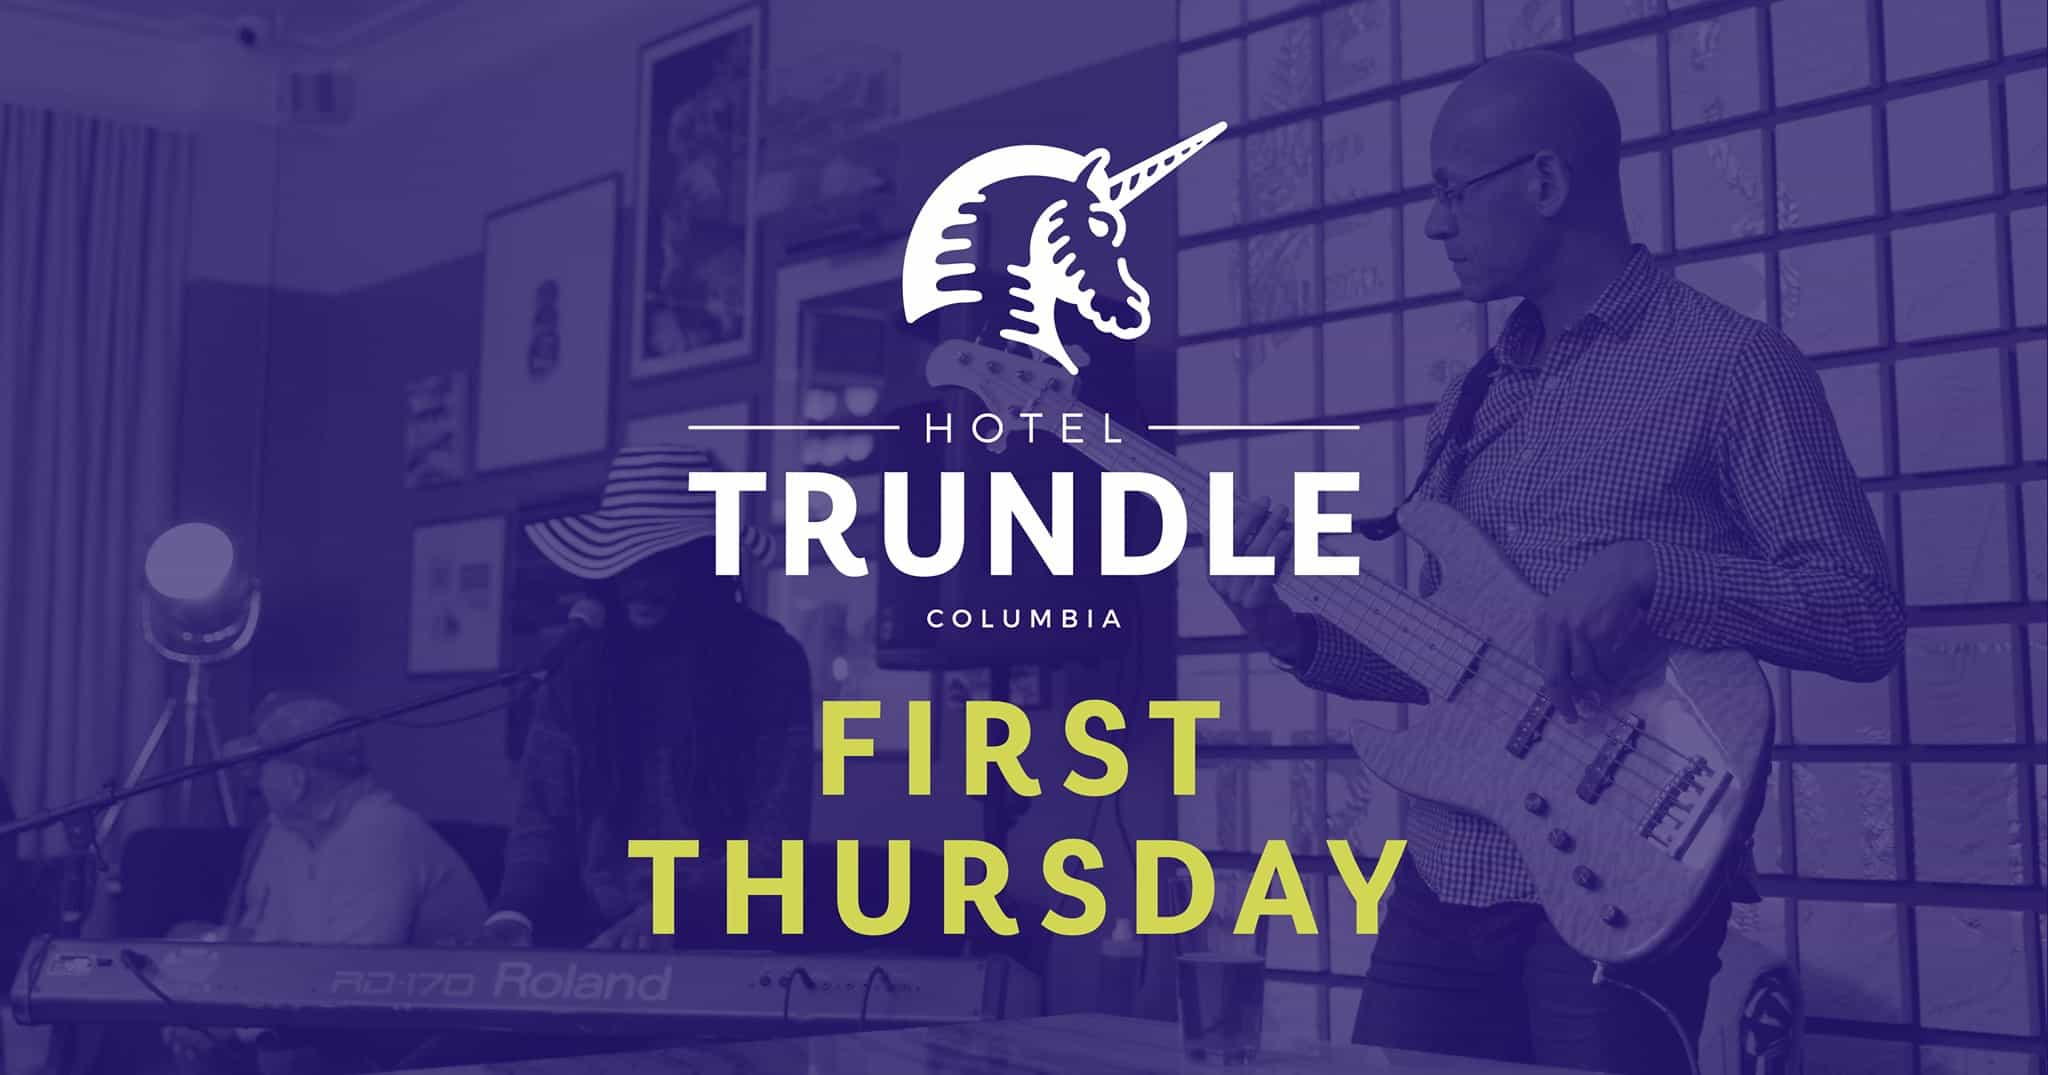 First Thursday on Main at Hotel Trundle